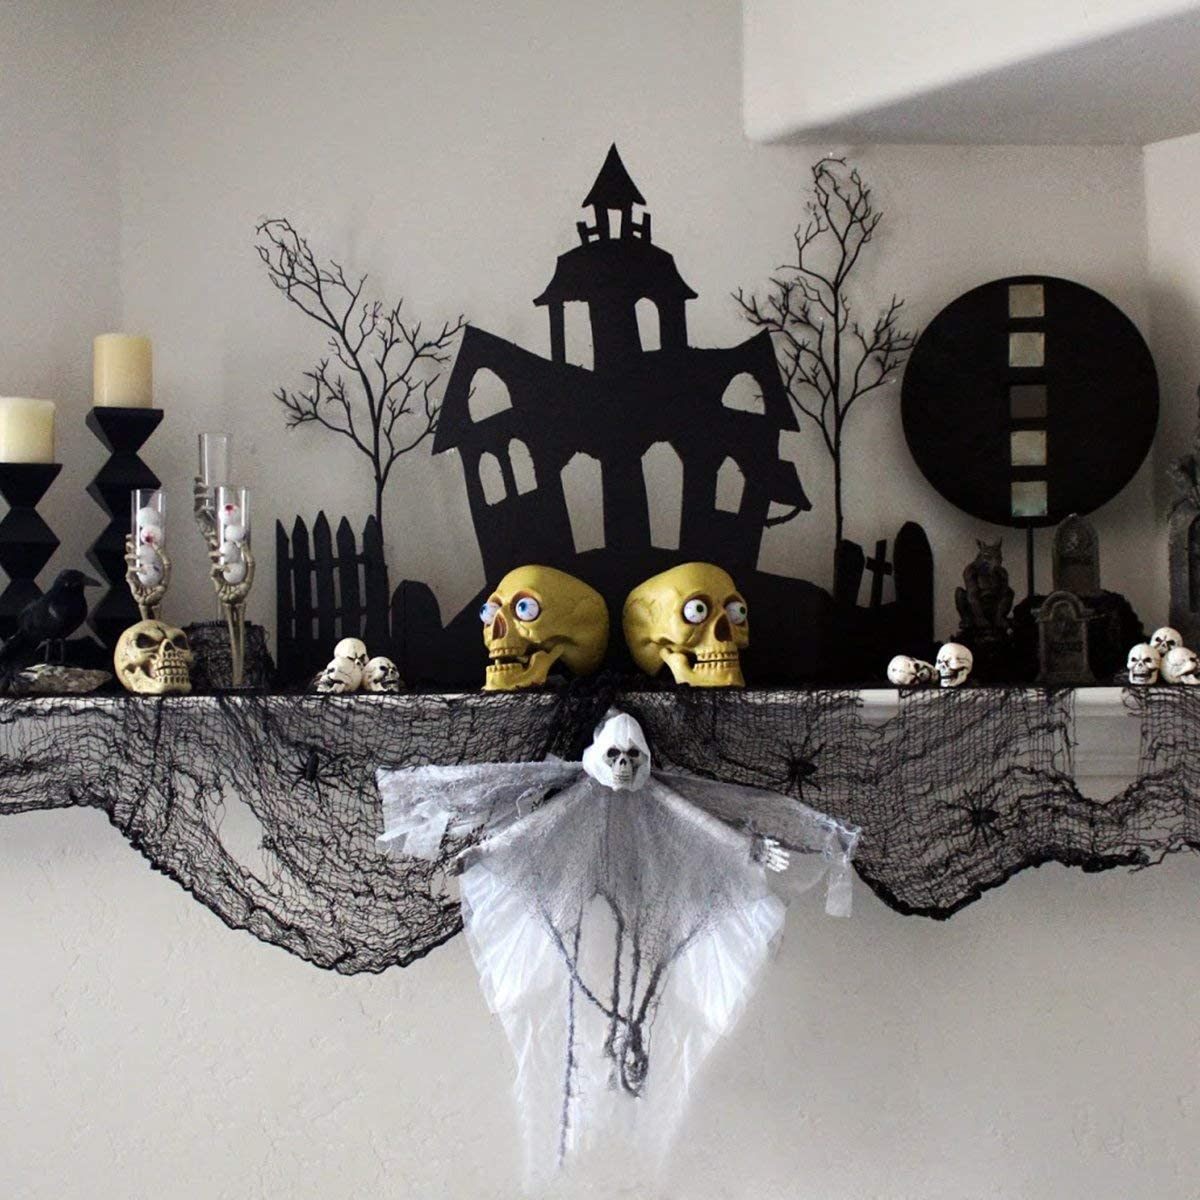 Black Creepy Cloth, Spooky Halloween Decorations for Haunted Houses Party Doorways Outdoor